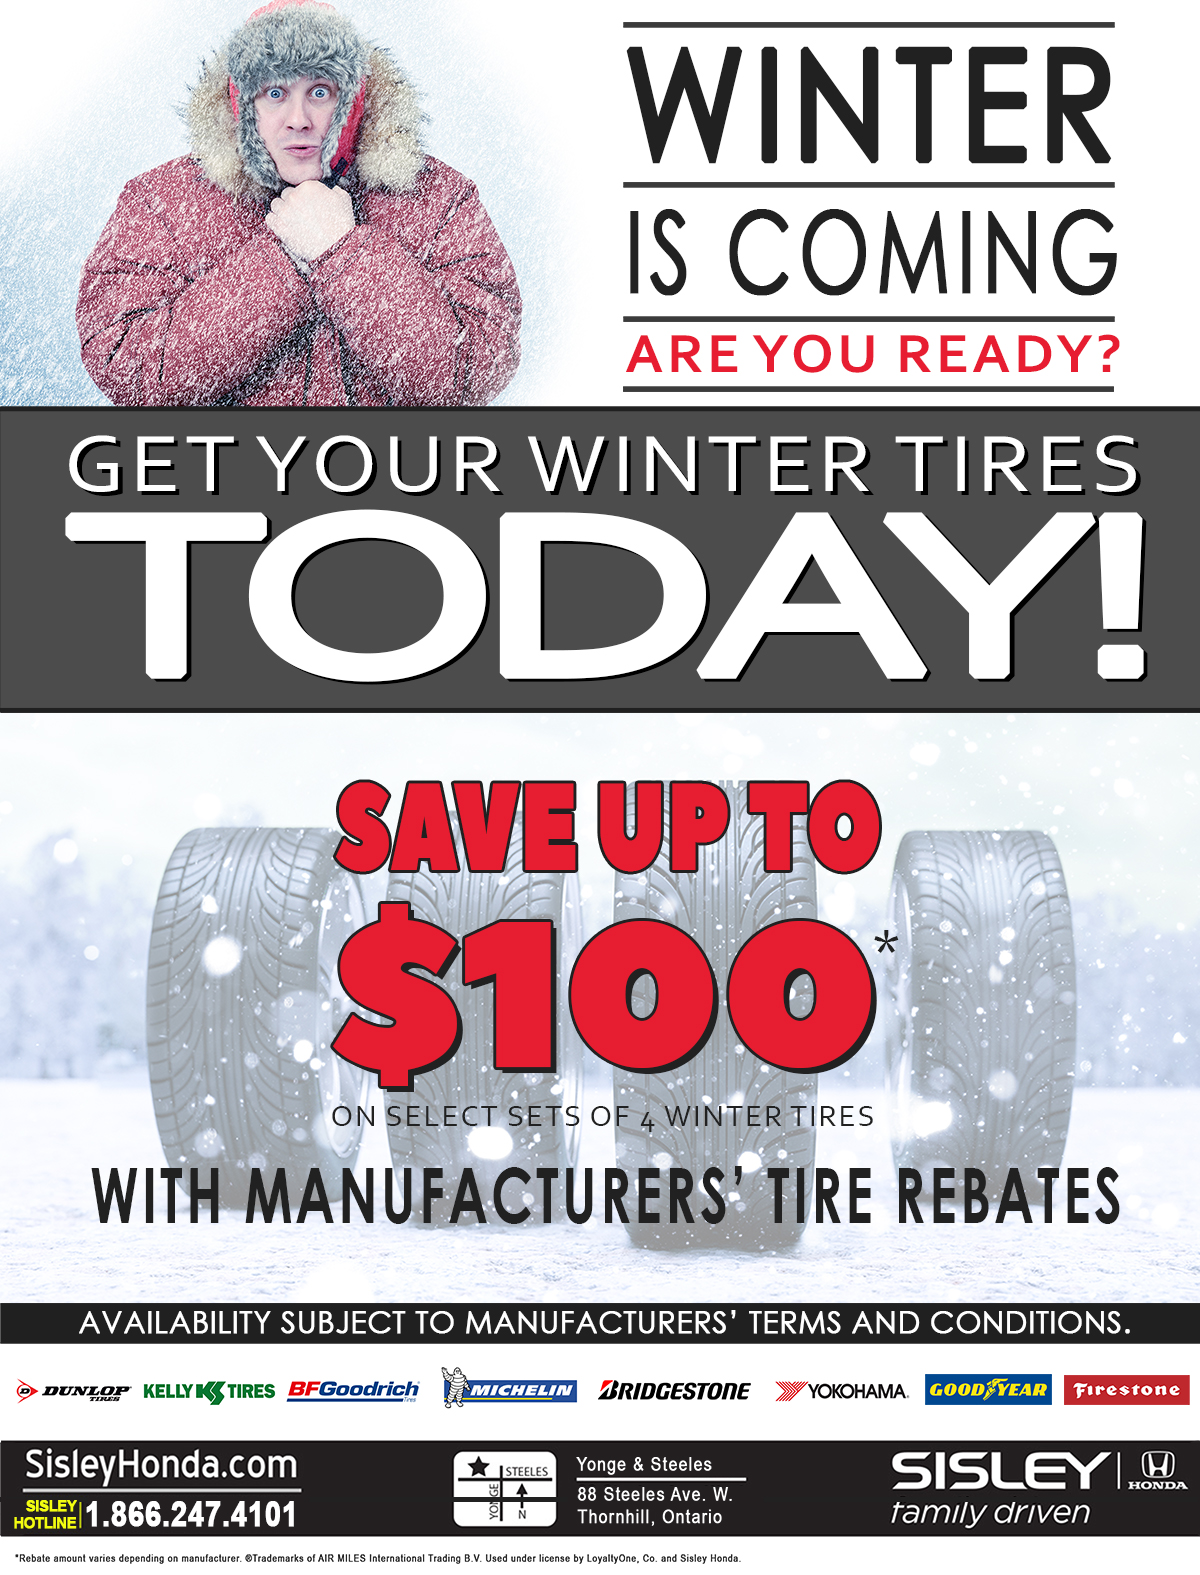 Sisley Honda Winter Tire Promotion